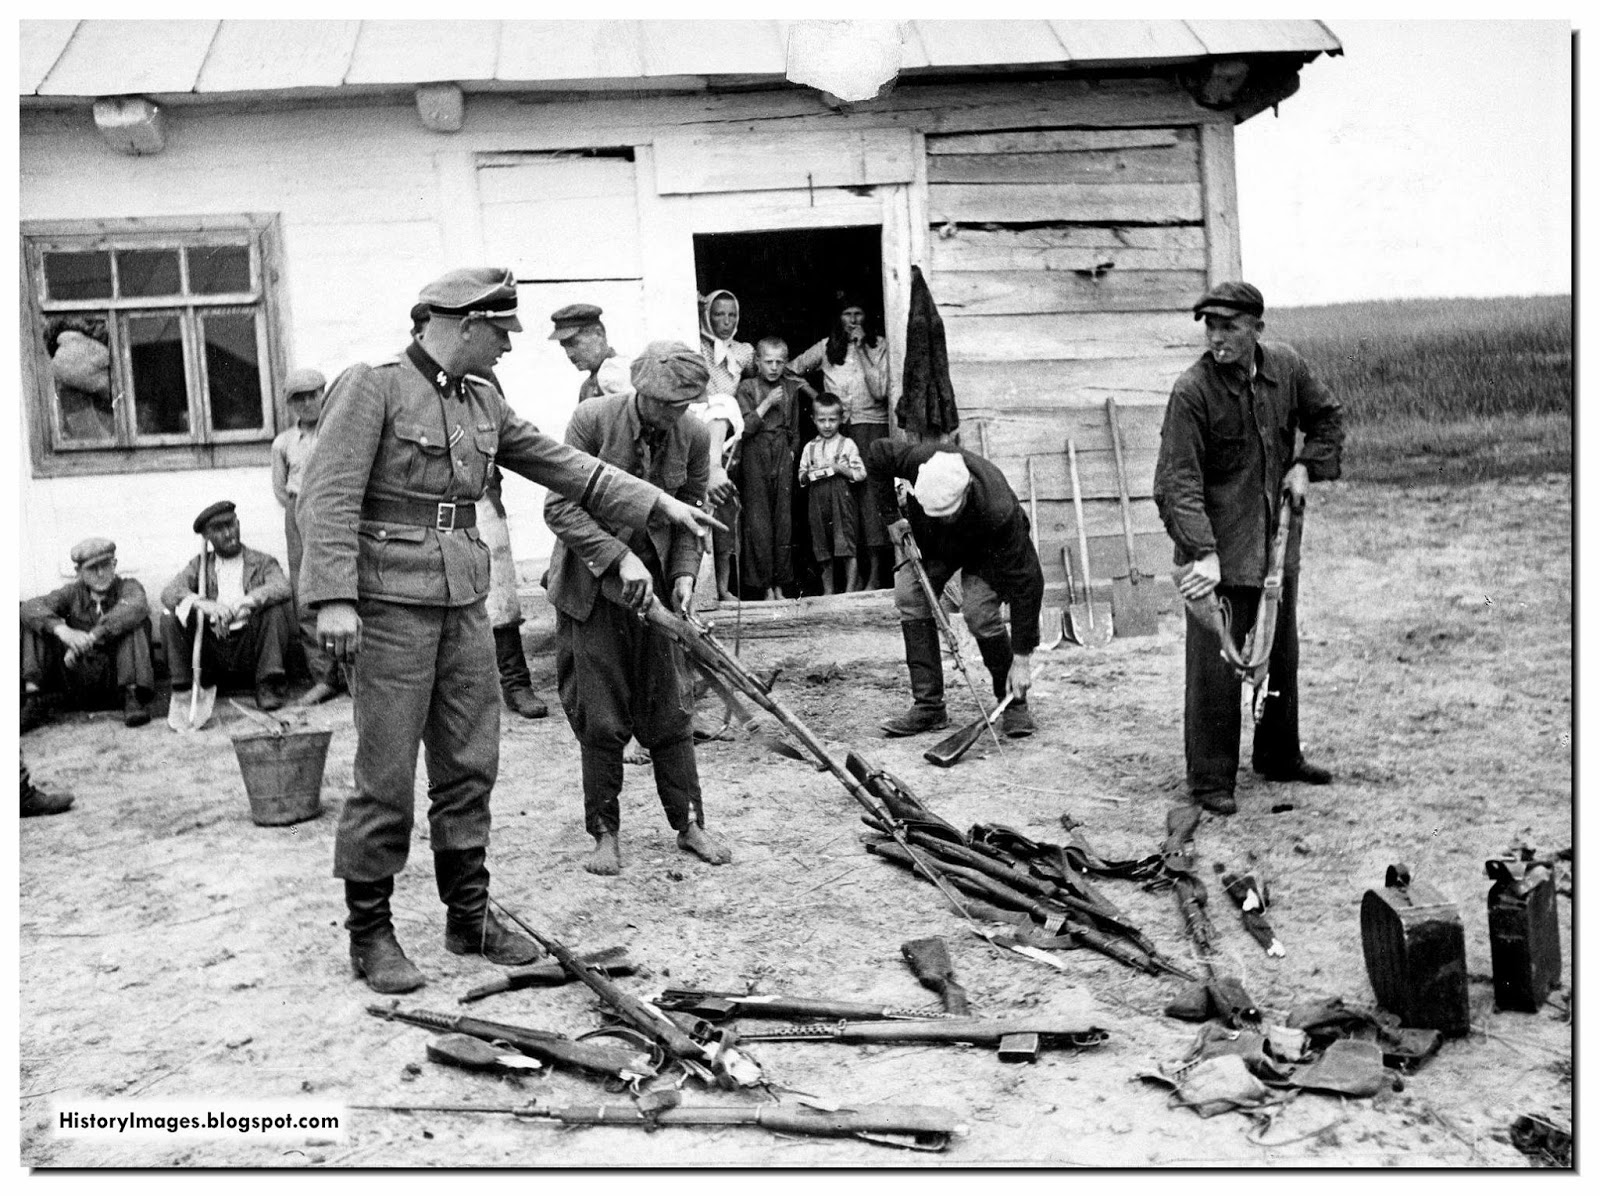 A German soldier orders Russian civilians gather captured Soviet arms.